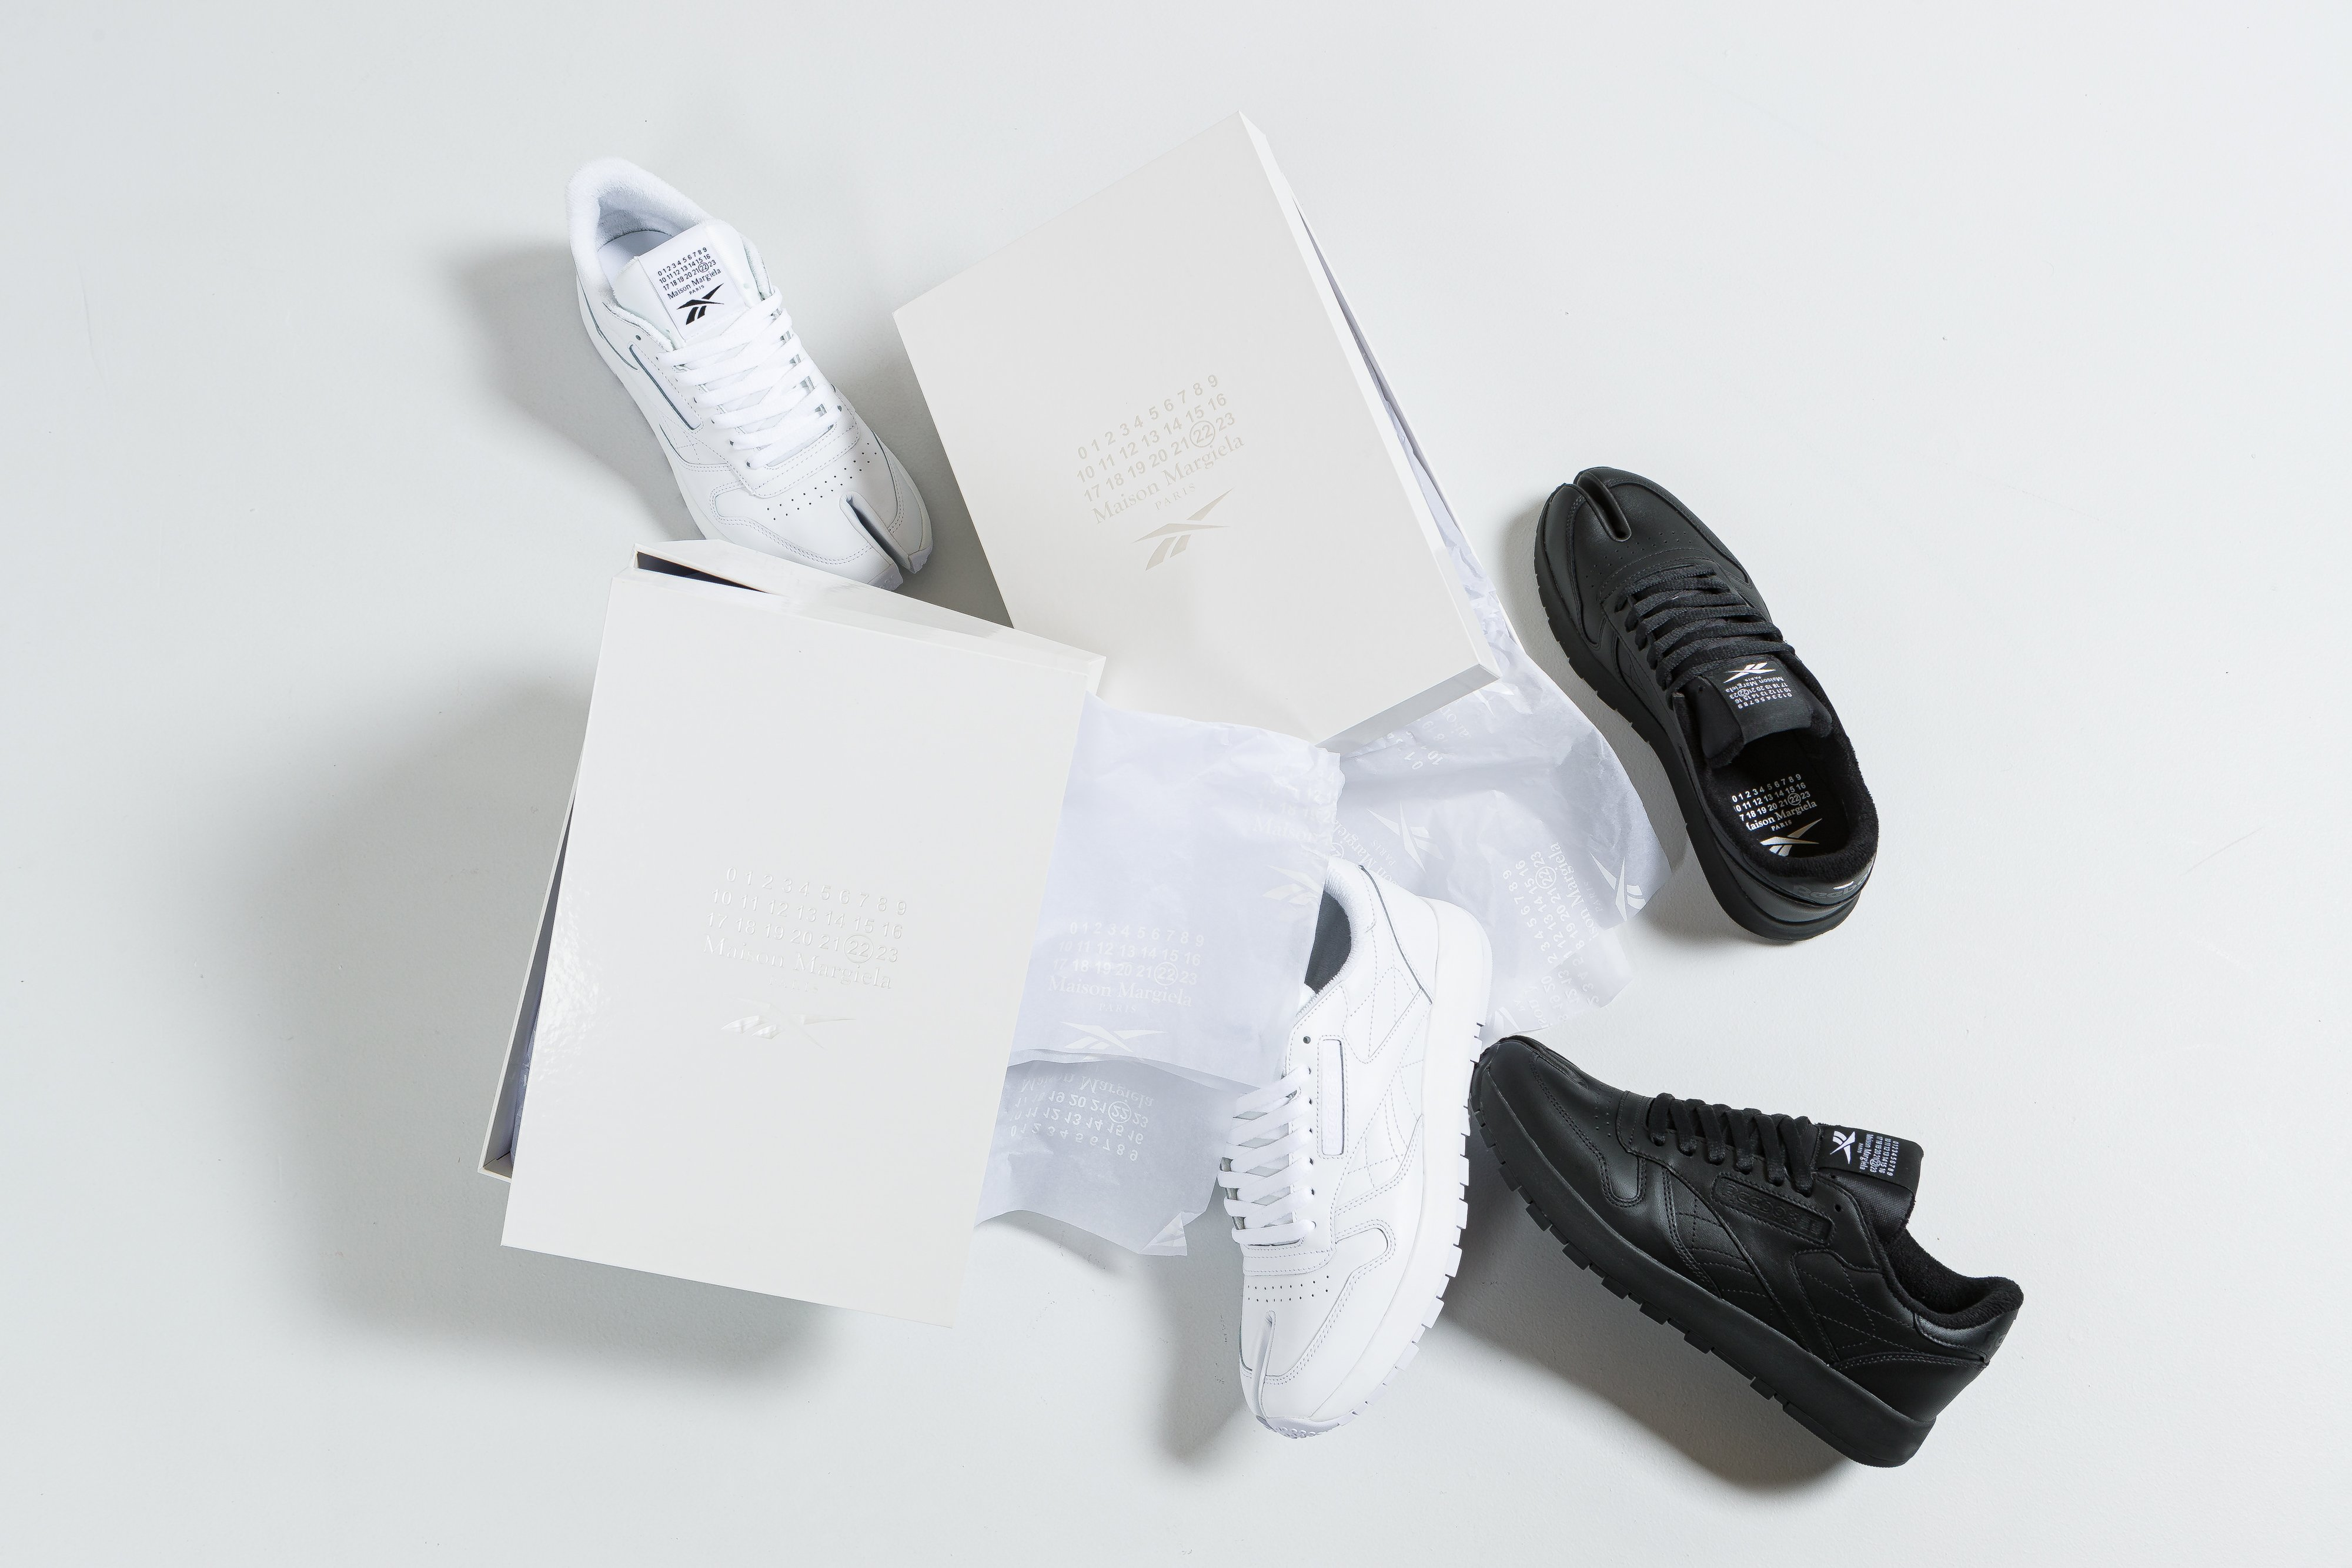 Up There Launches - Reebok Classics X Maison Martin Margiela 'Project 0' CL Leather Tabi